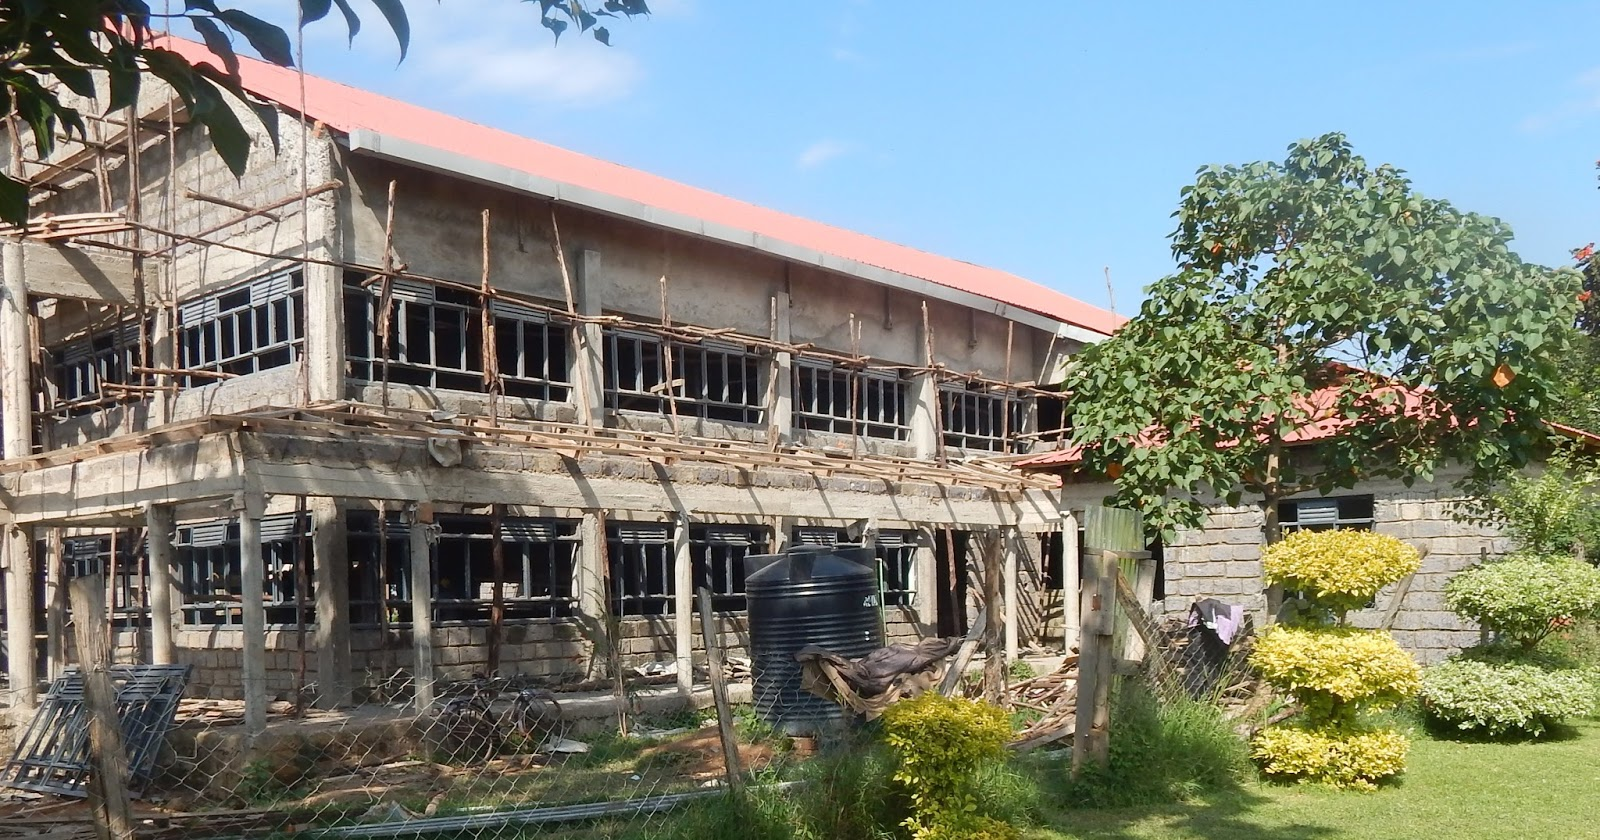 The building will be among the biggest modern churches in kakamega county upon its completion